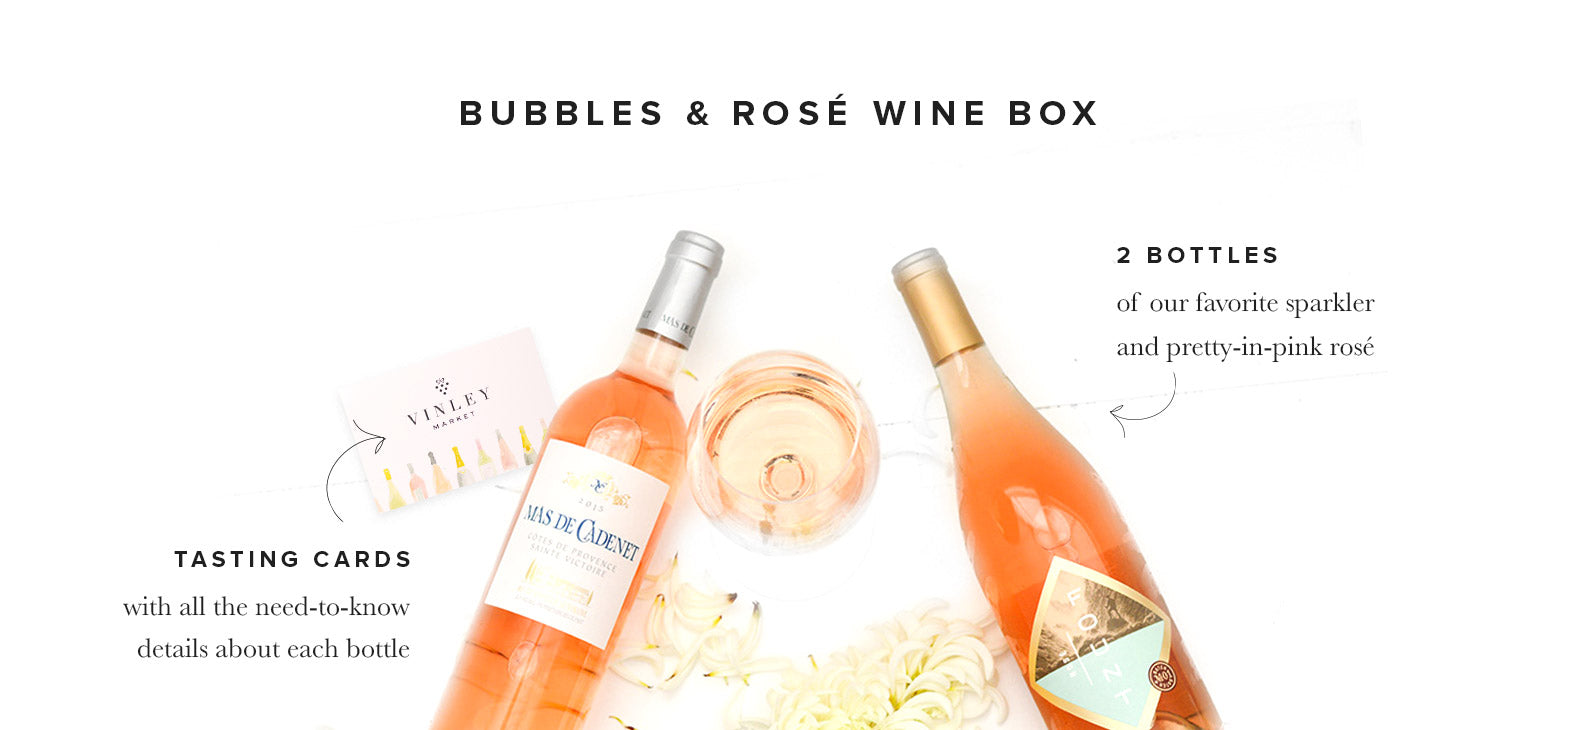 Vinley Bubbles & Rose Wine Box